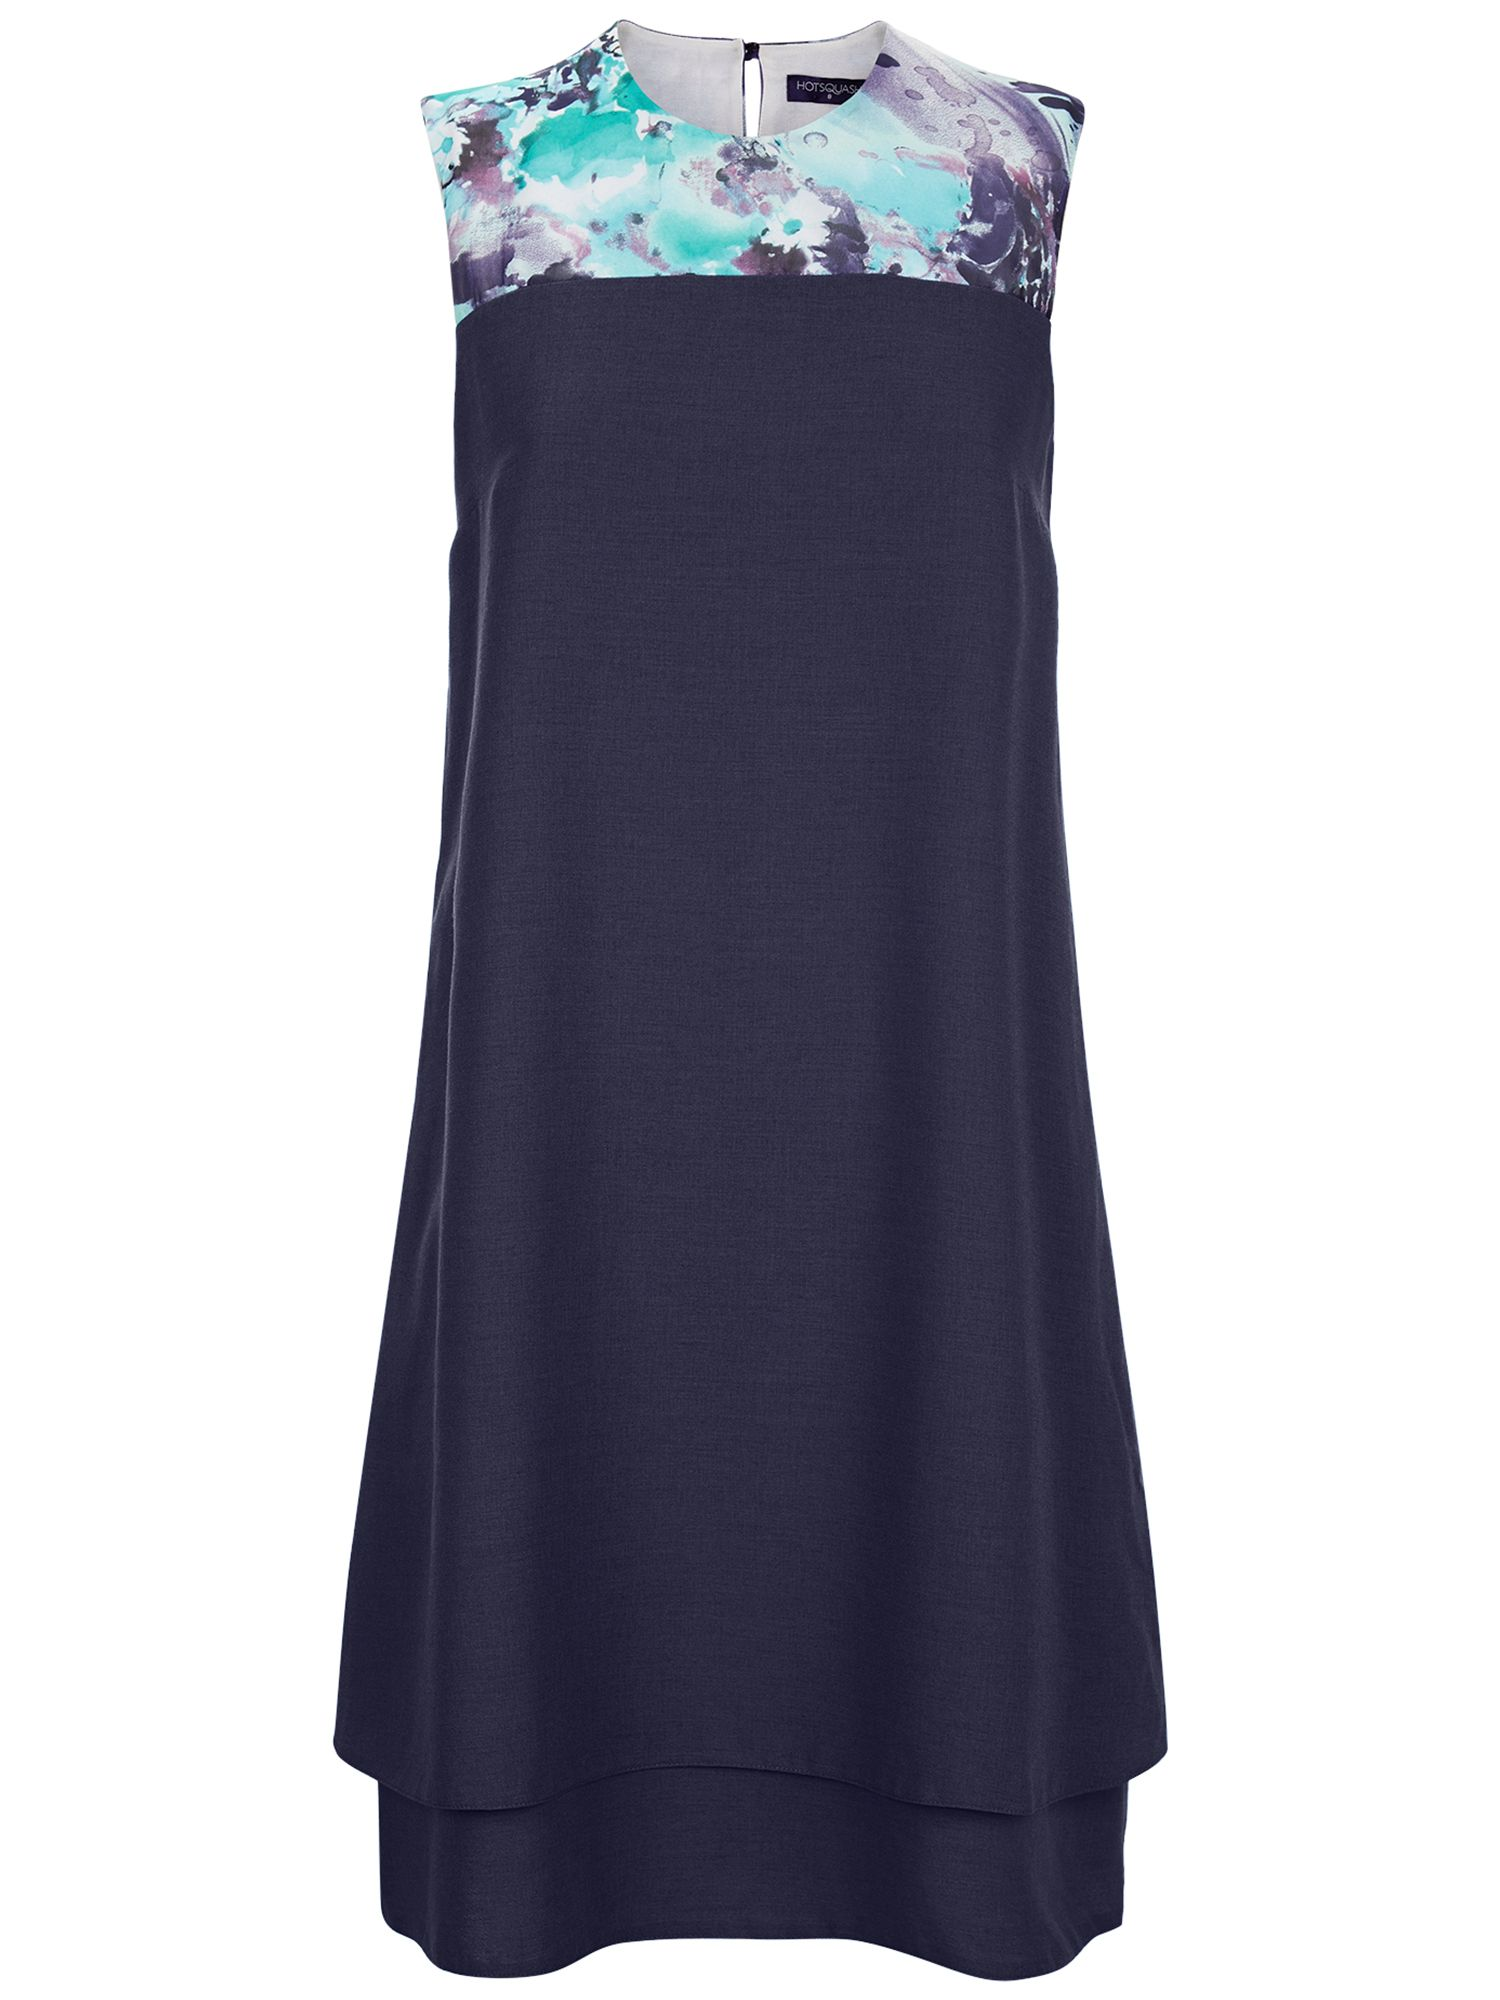 HotSquash Double Layered Dress in CoolFresh, Blue